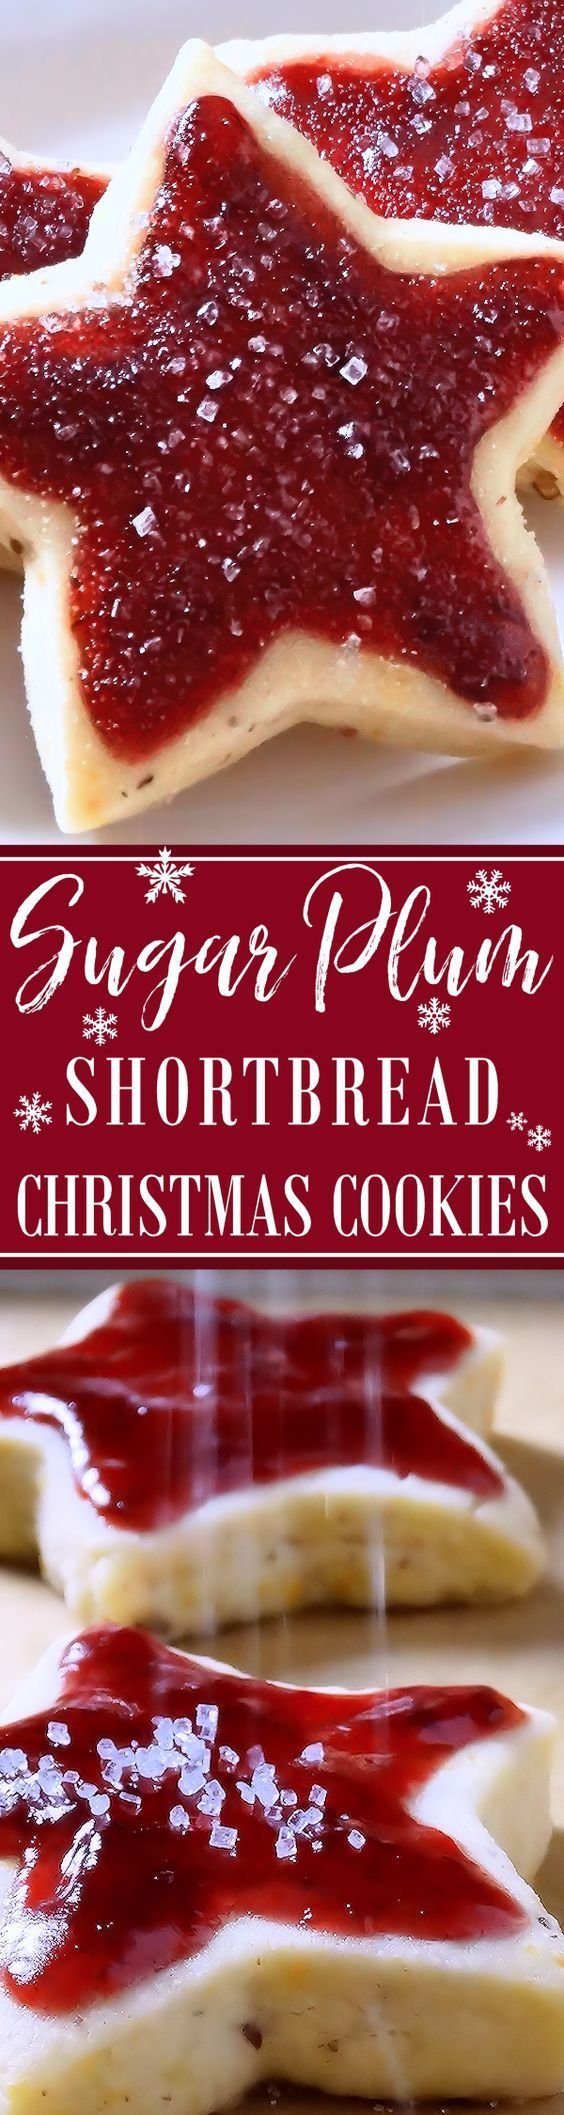 Sugar Plum Shortbread Christmas Cookies ~ Scrumptious old-fashioned buttery shor…